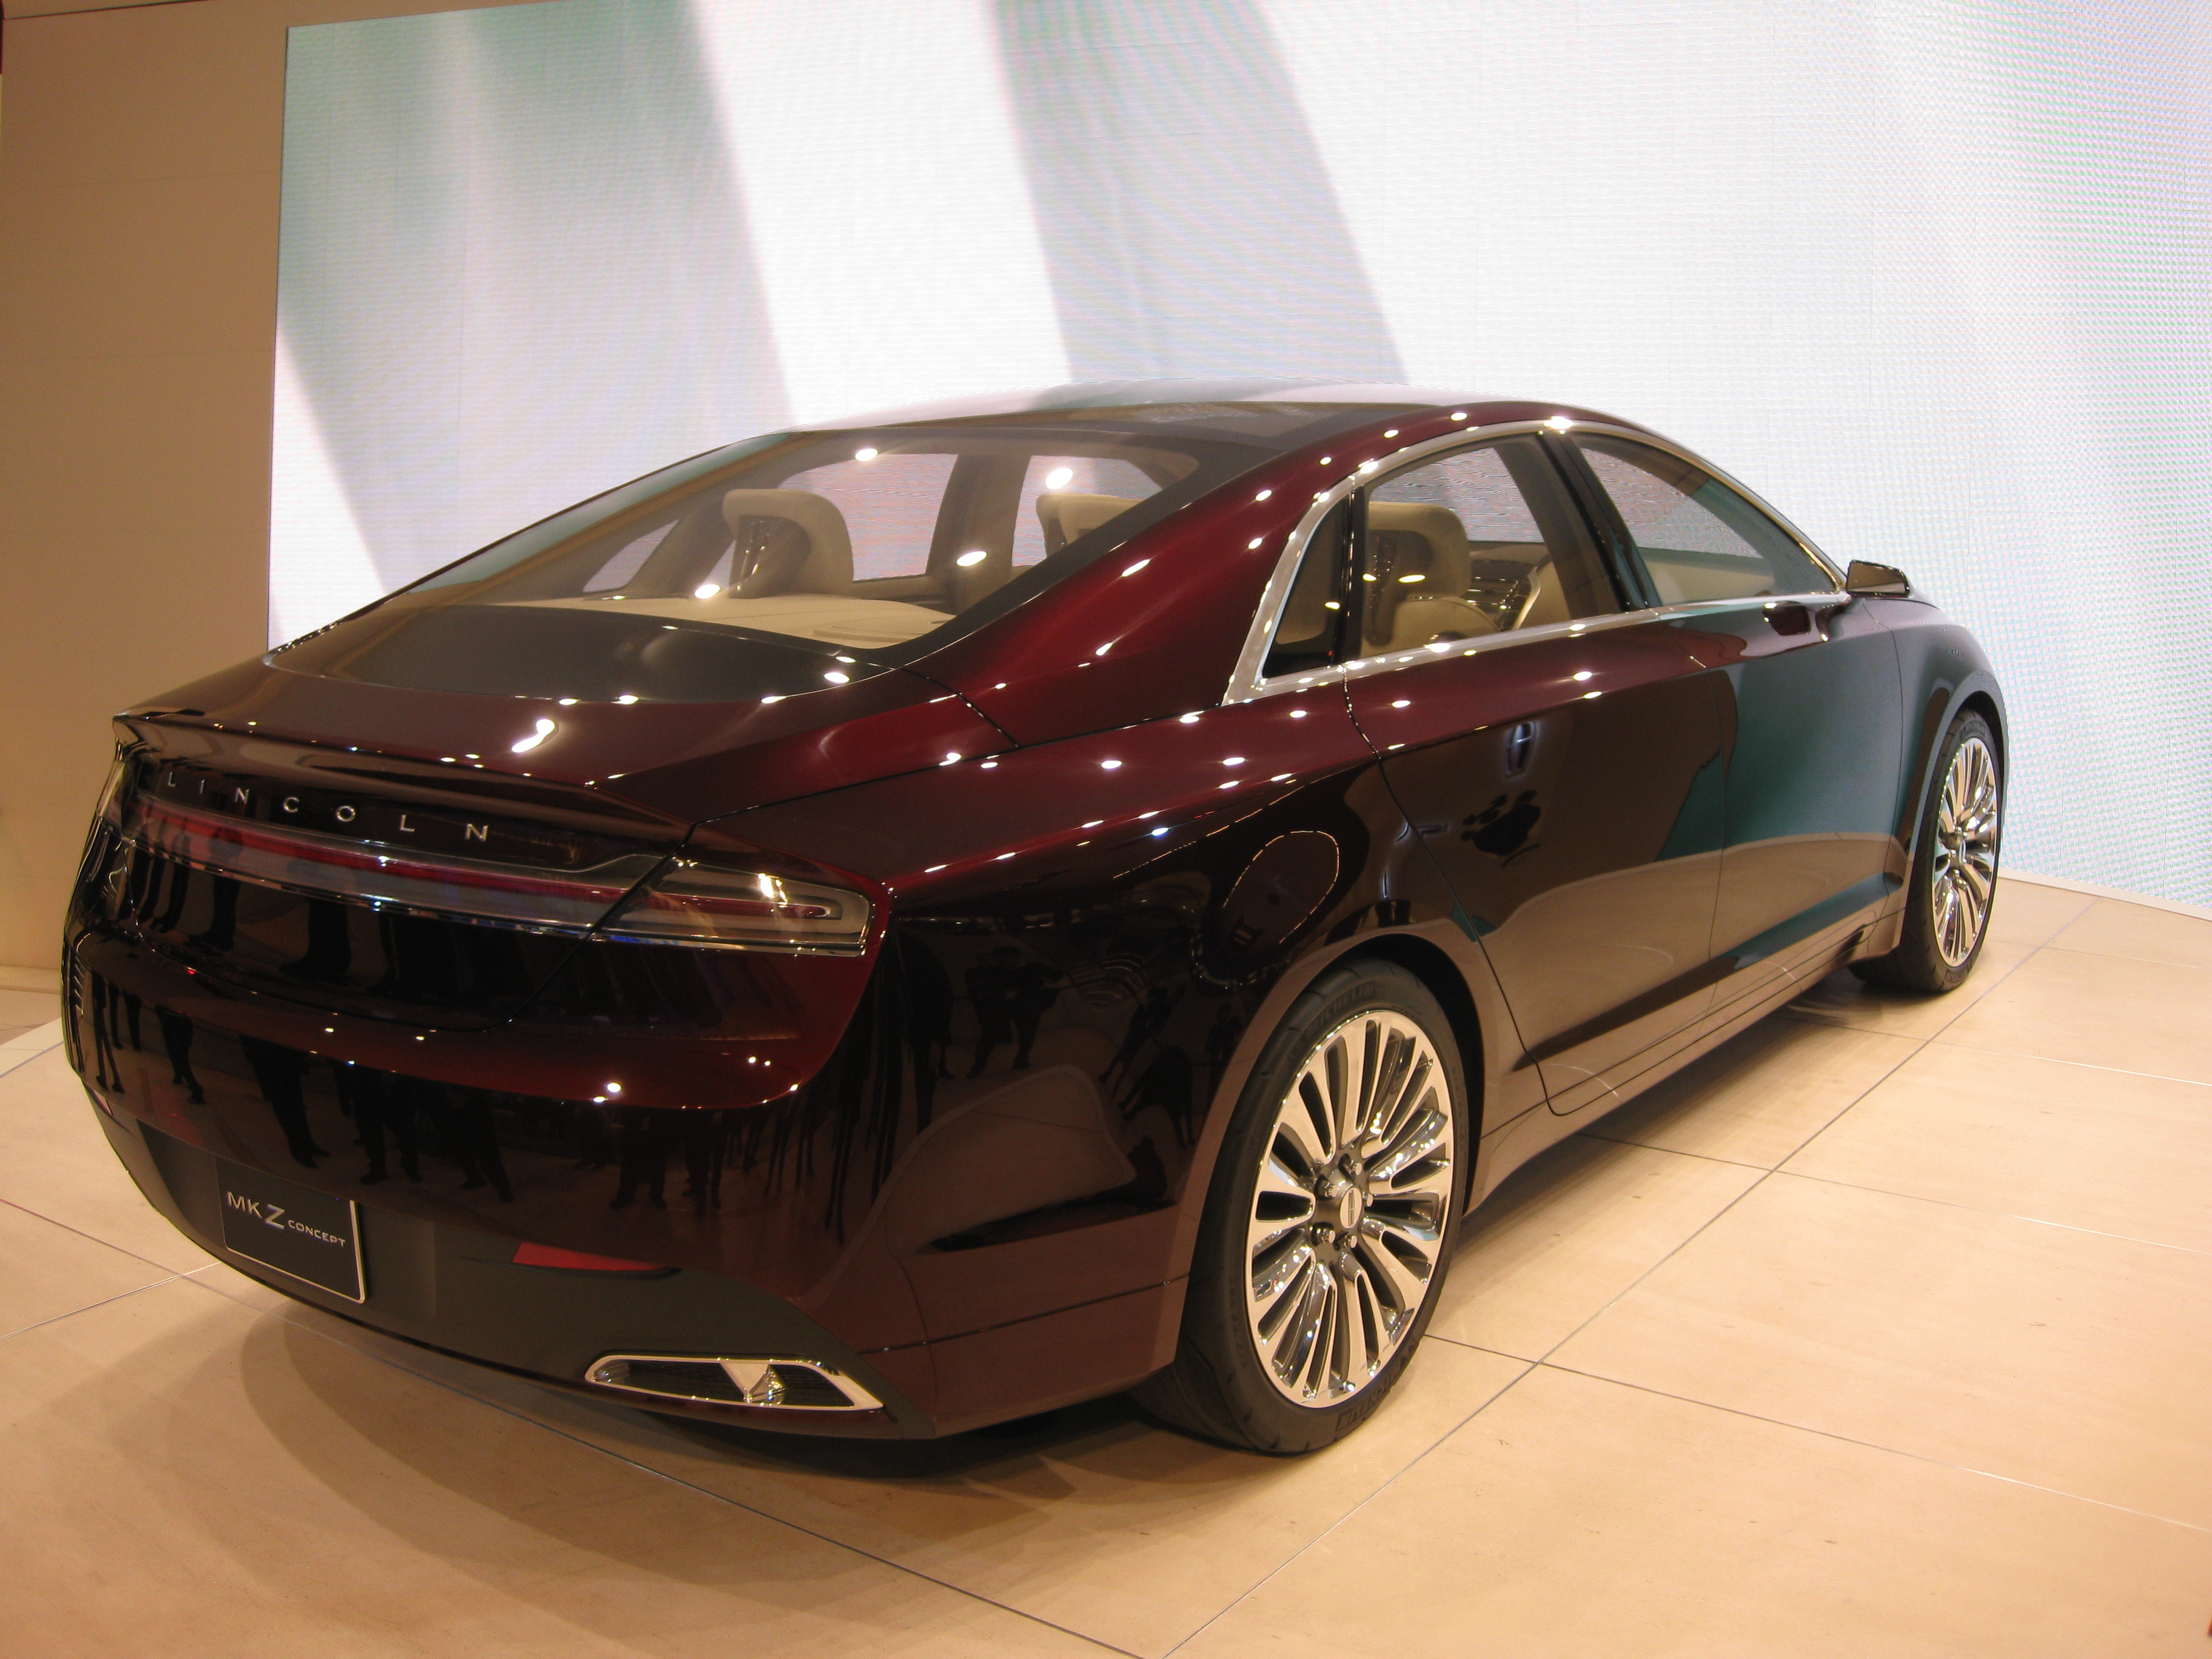 file lincoln mkz concept at naias 2012 6679771293 jpg wikimedia commons. Black Bedroom Furniture Sets. Home Design Ideas